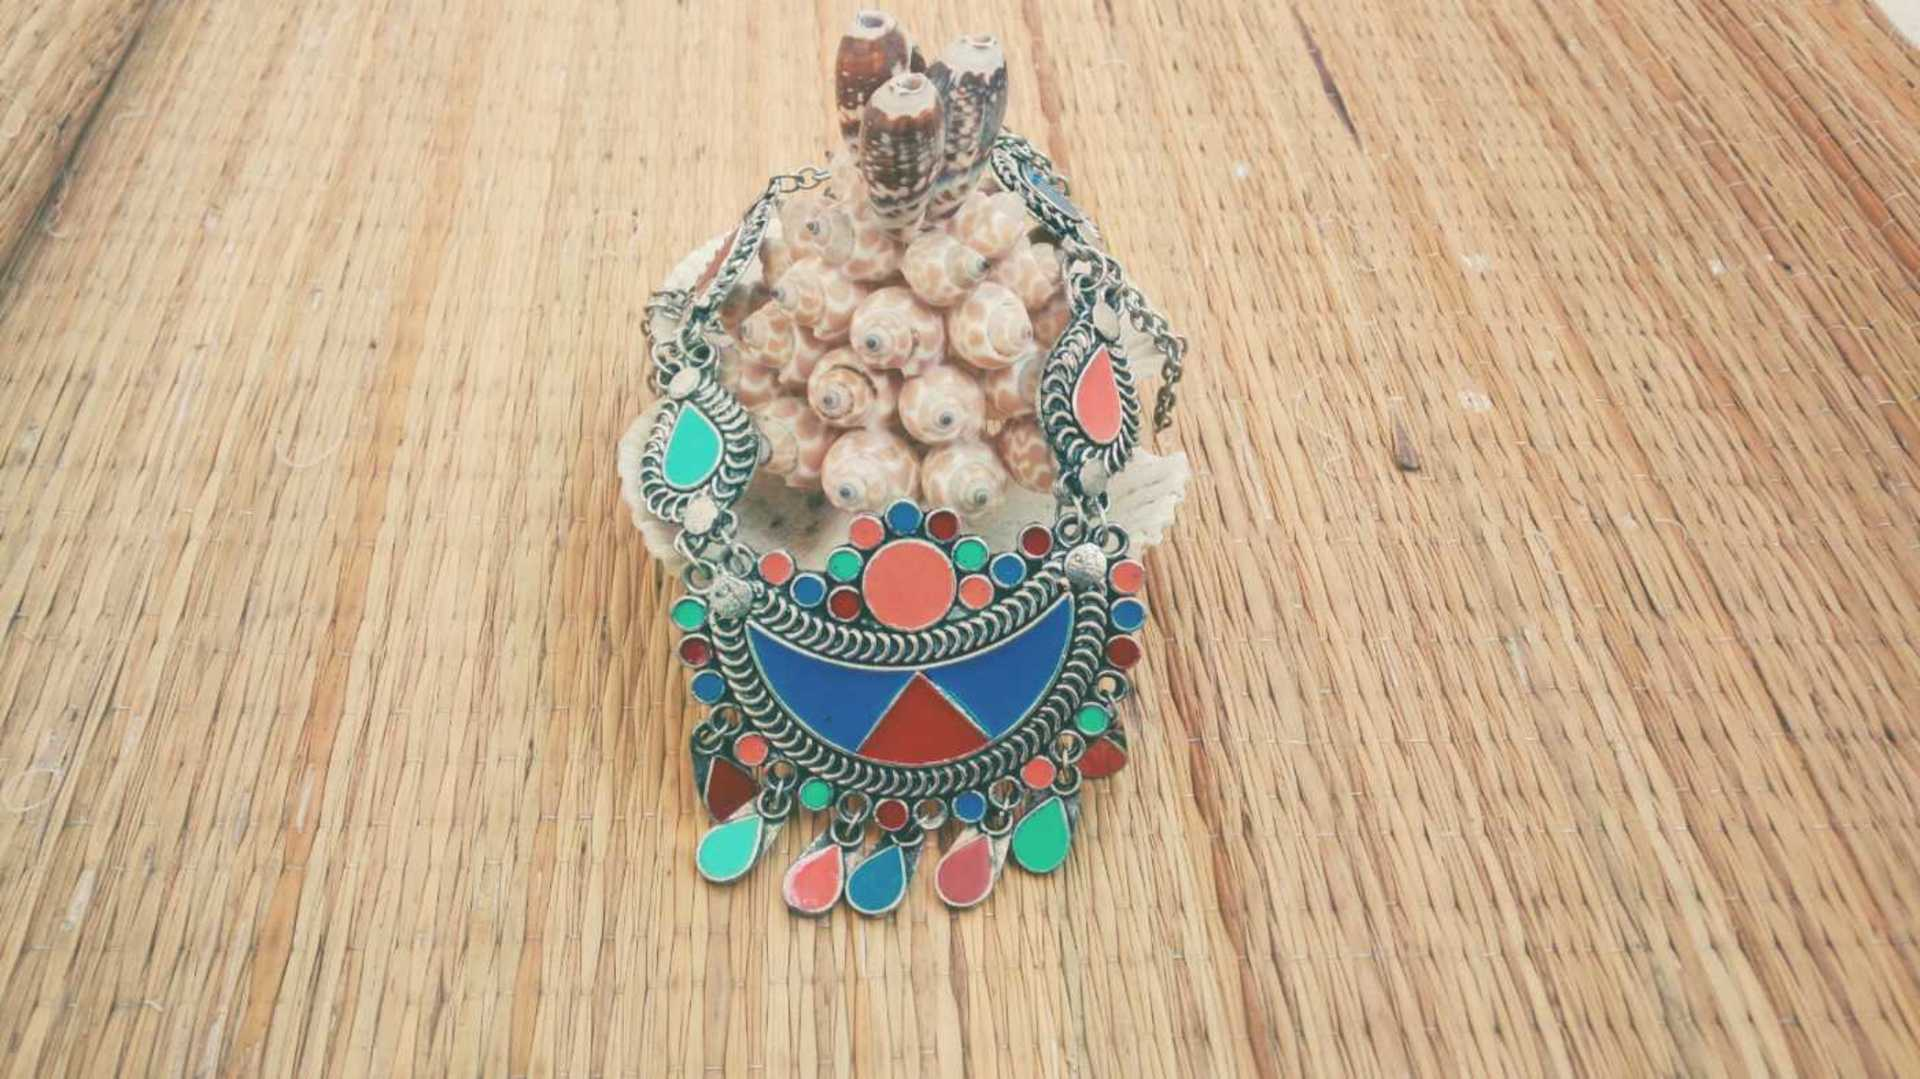 Handmade-jewellery-fashion-unique-style